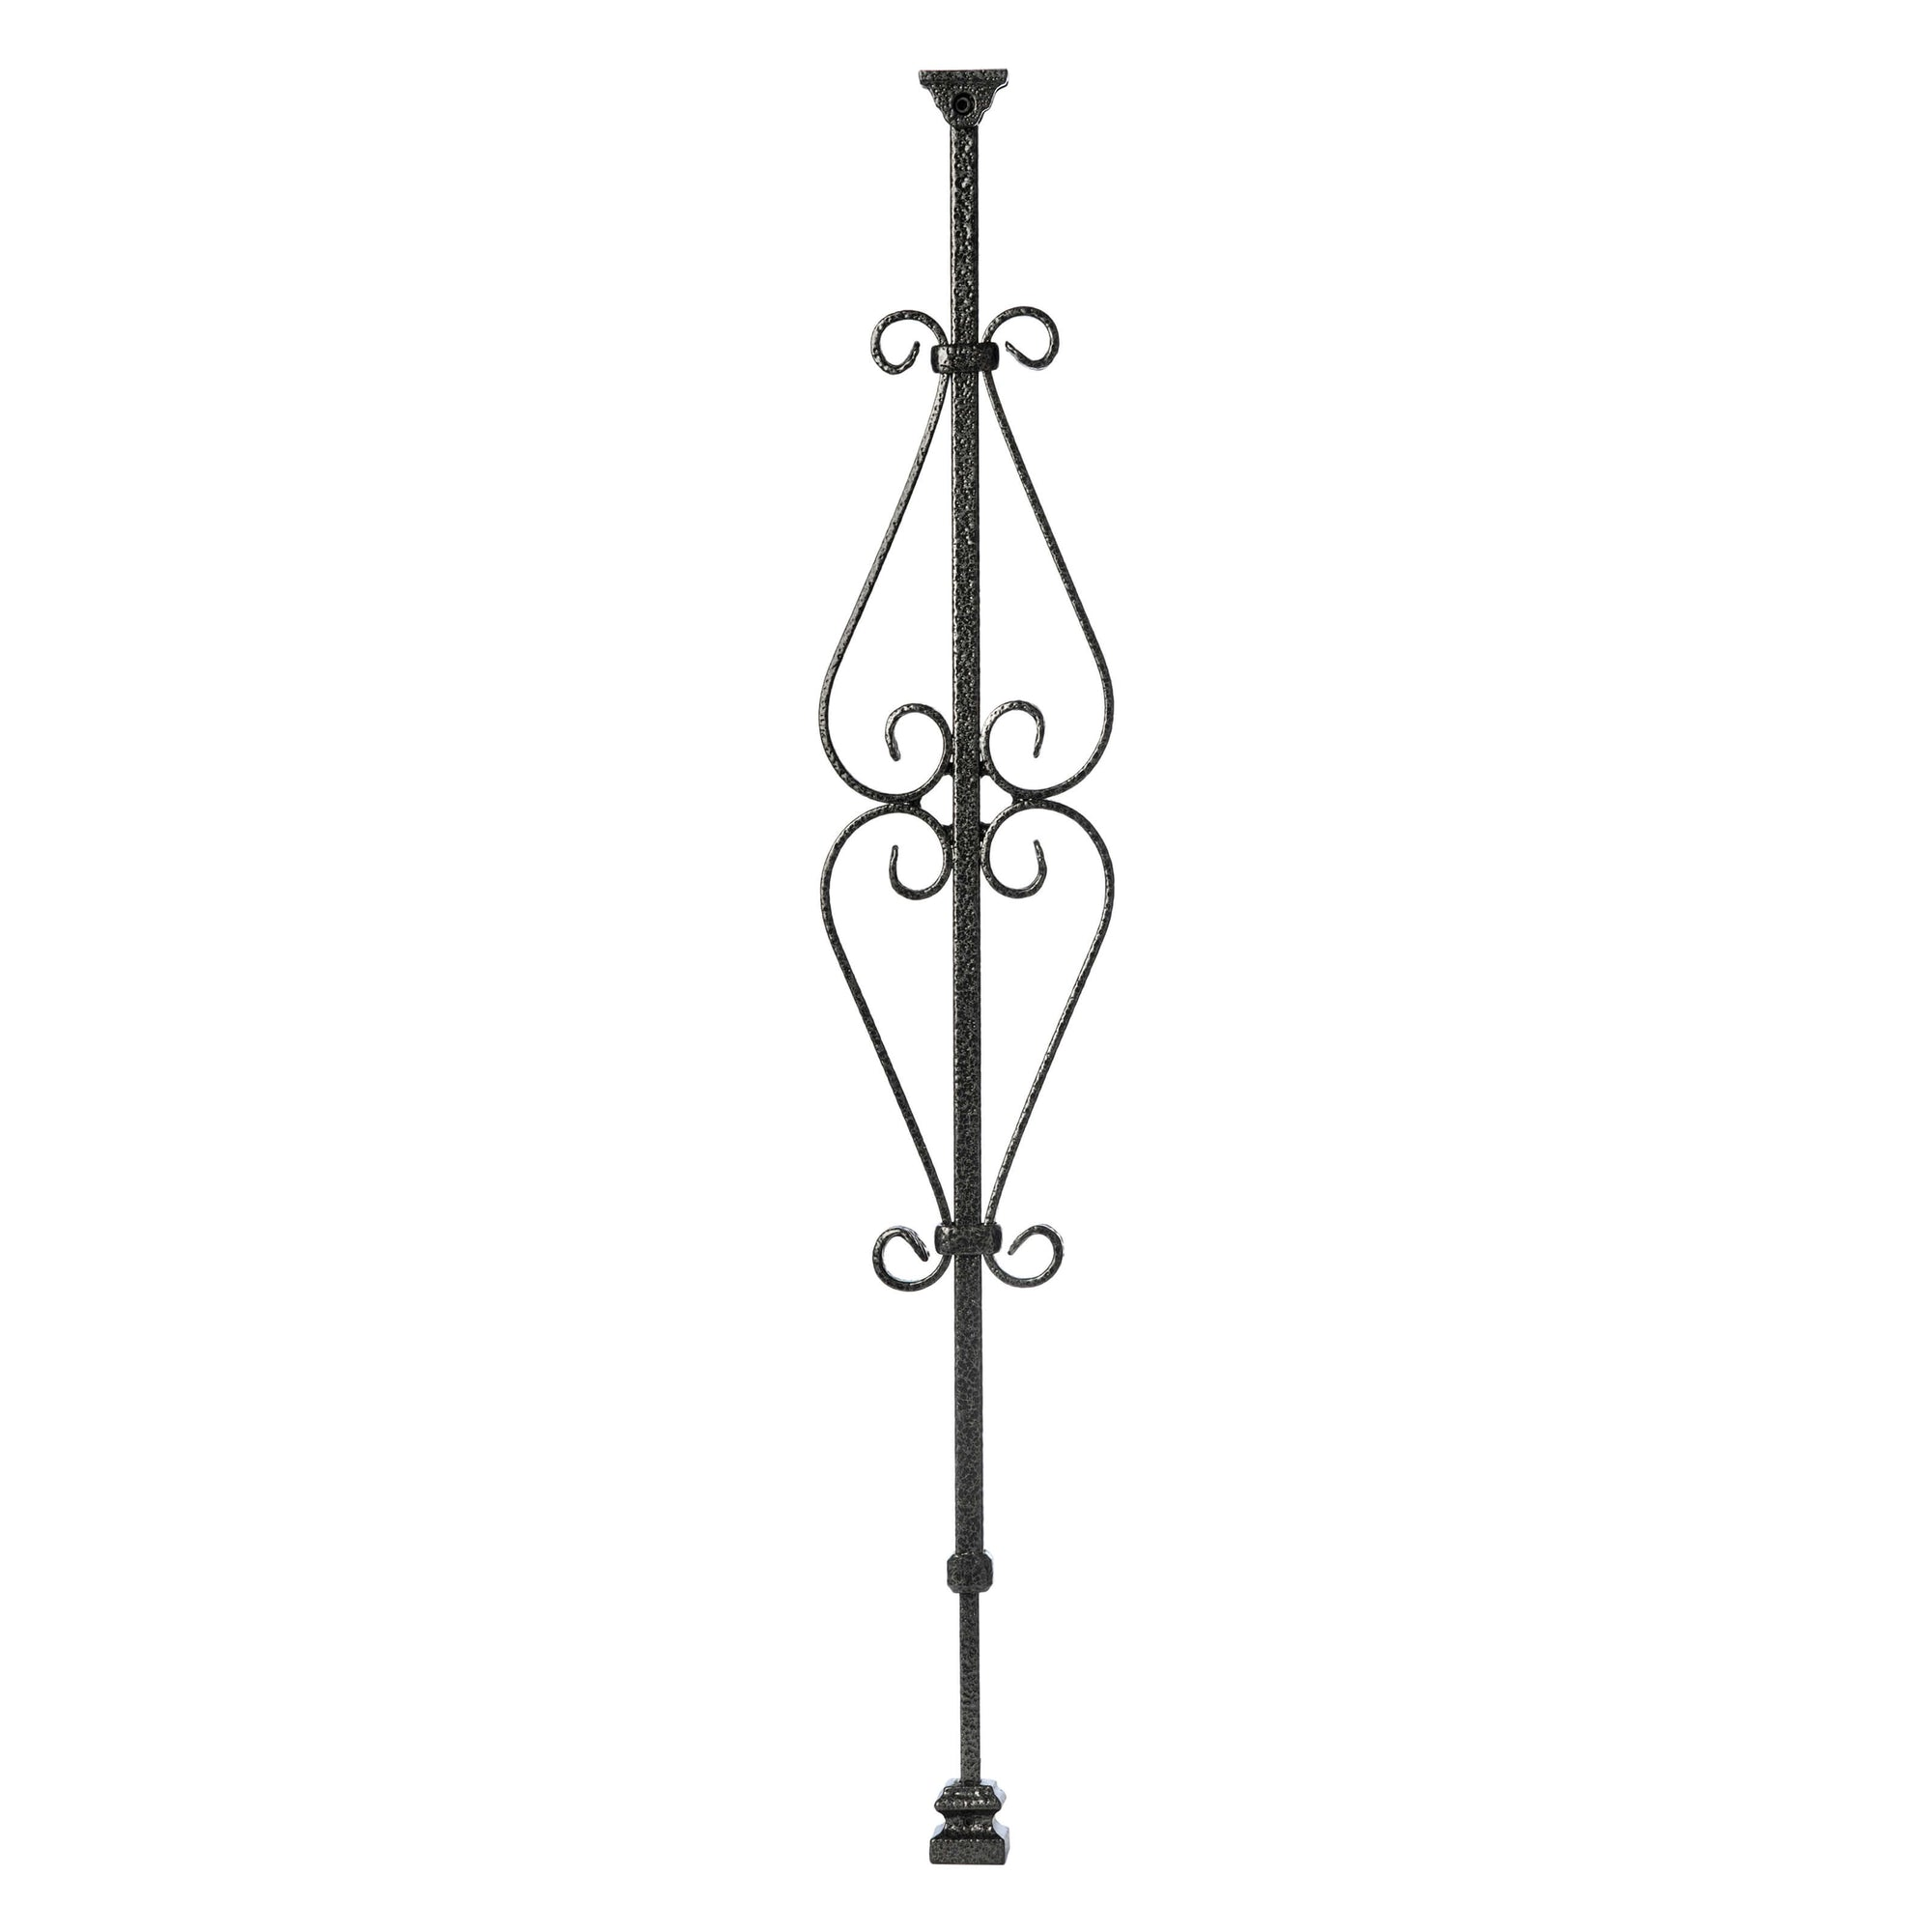 """Ole Iron Slides"" - Scroll Series - 1/2"" Square x 29-1/2""-38""H CISSSC Spade Scroll Adjustable Iron Baluster"